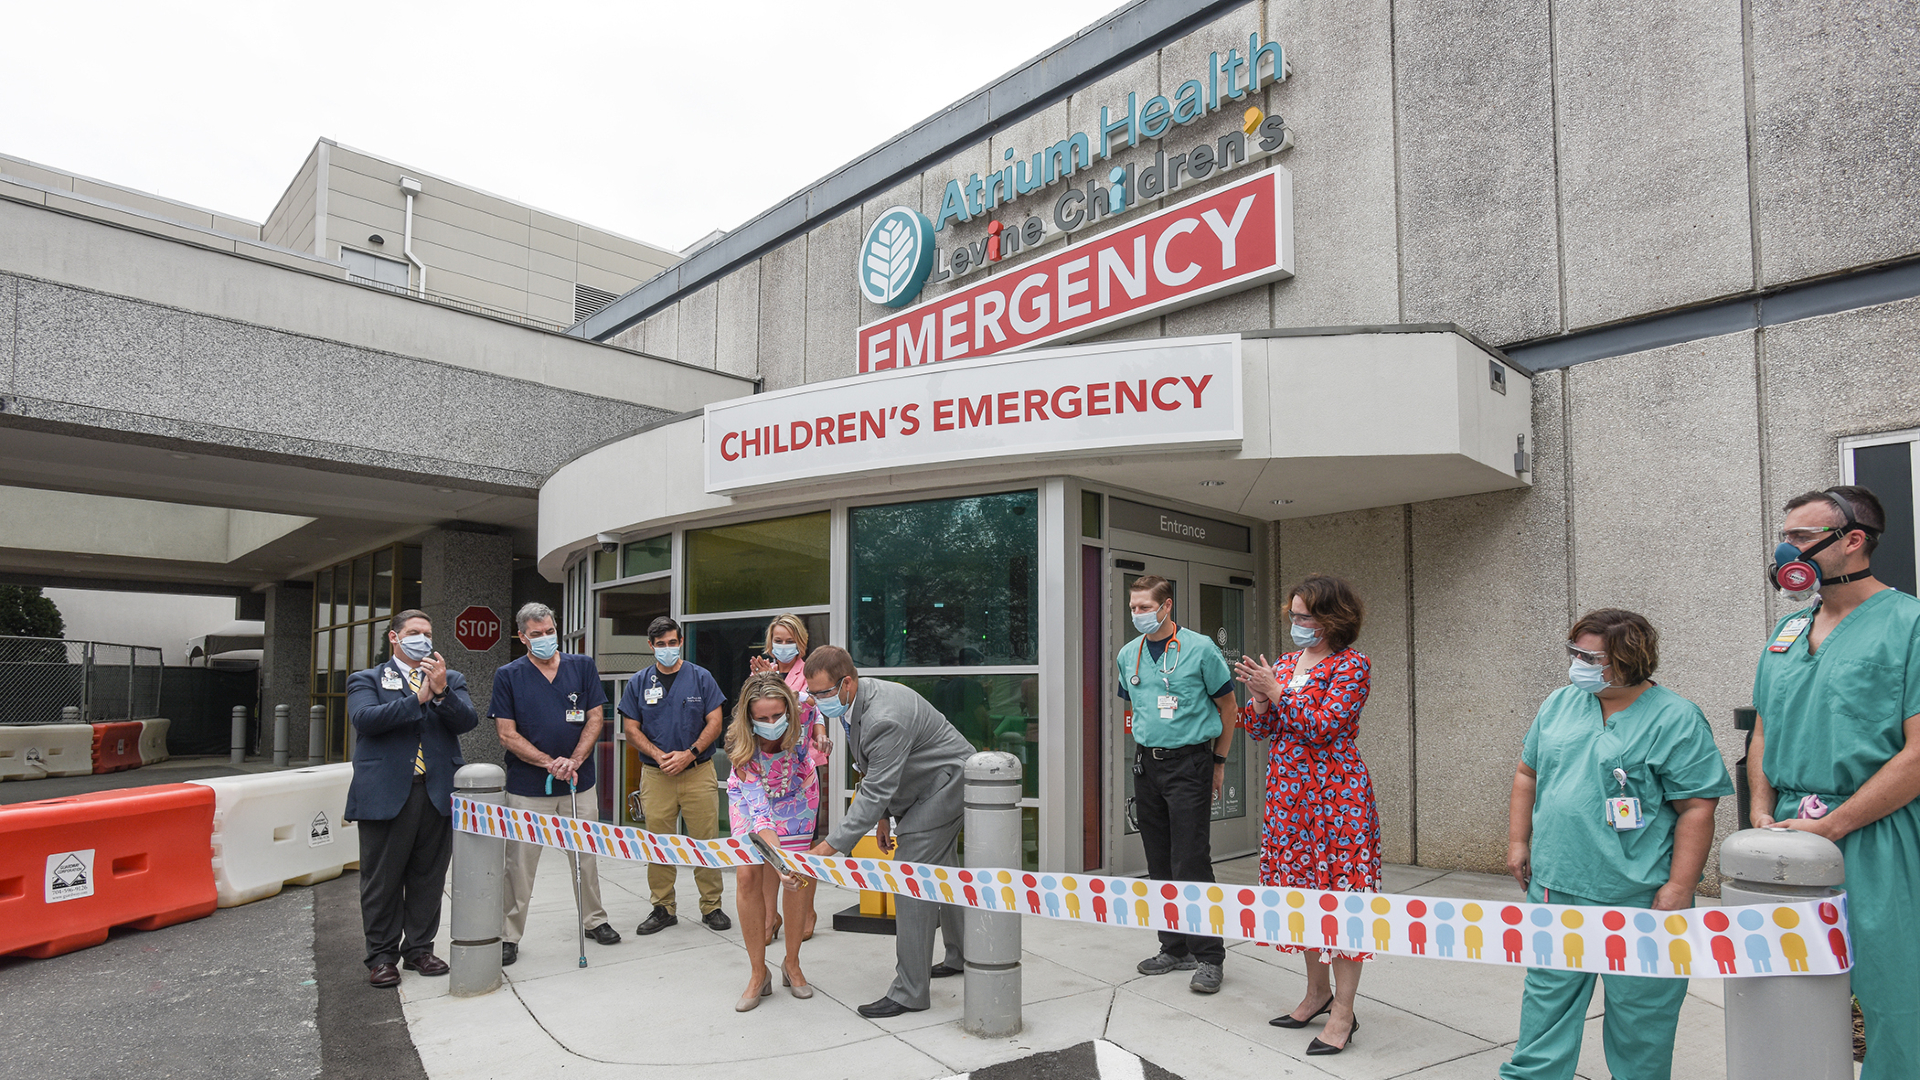 Atrium Health Levine Children's announces the unveiling of its newly expanded and renovated pediatric emergency department at Levine Children's Hospital, dedicated to providing expert emergency care in Charlotte in a kid-friendly, kid-focused setting.